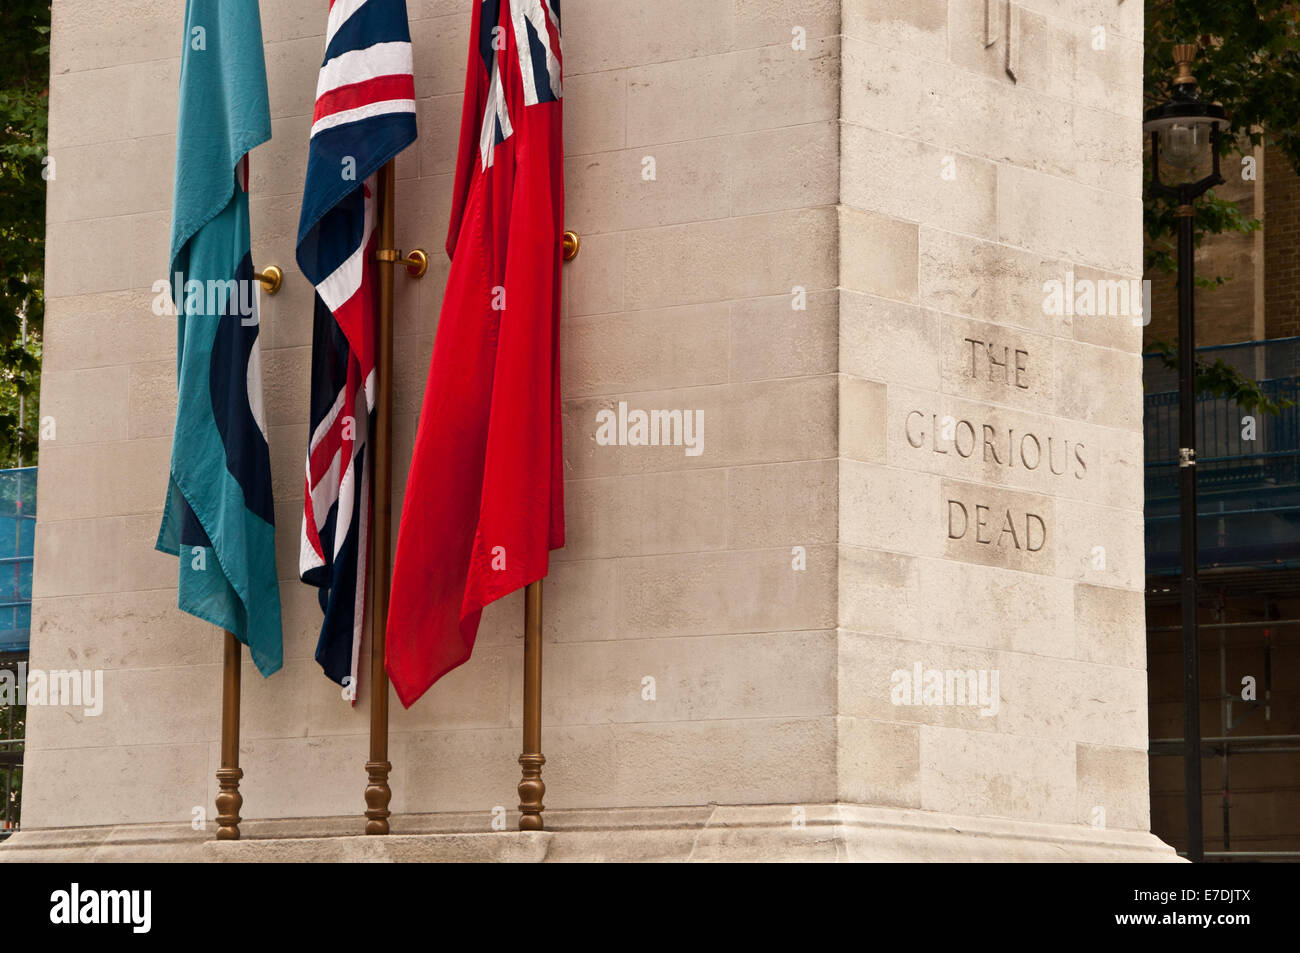 London Cenotaph to The Glorious Dead - Stock Image